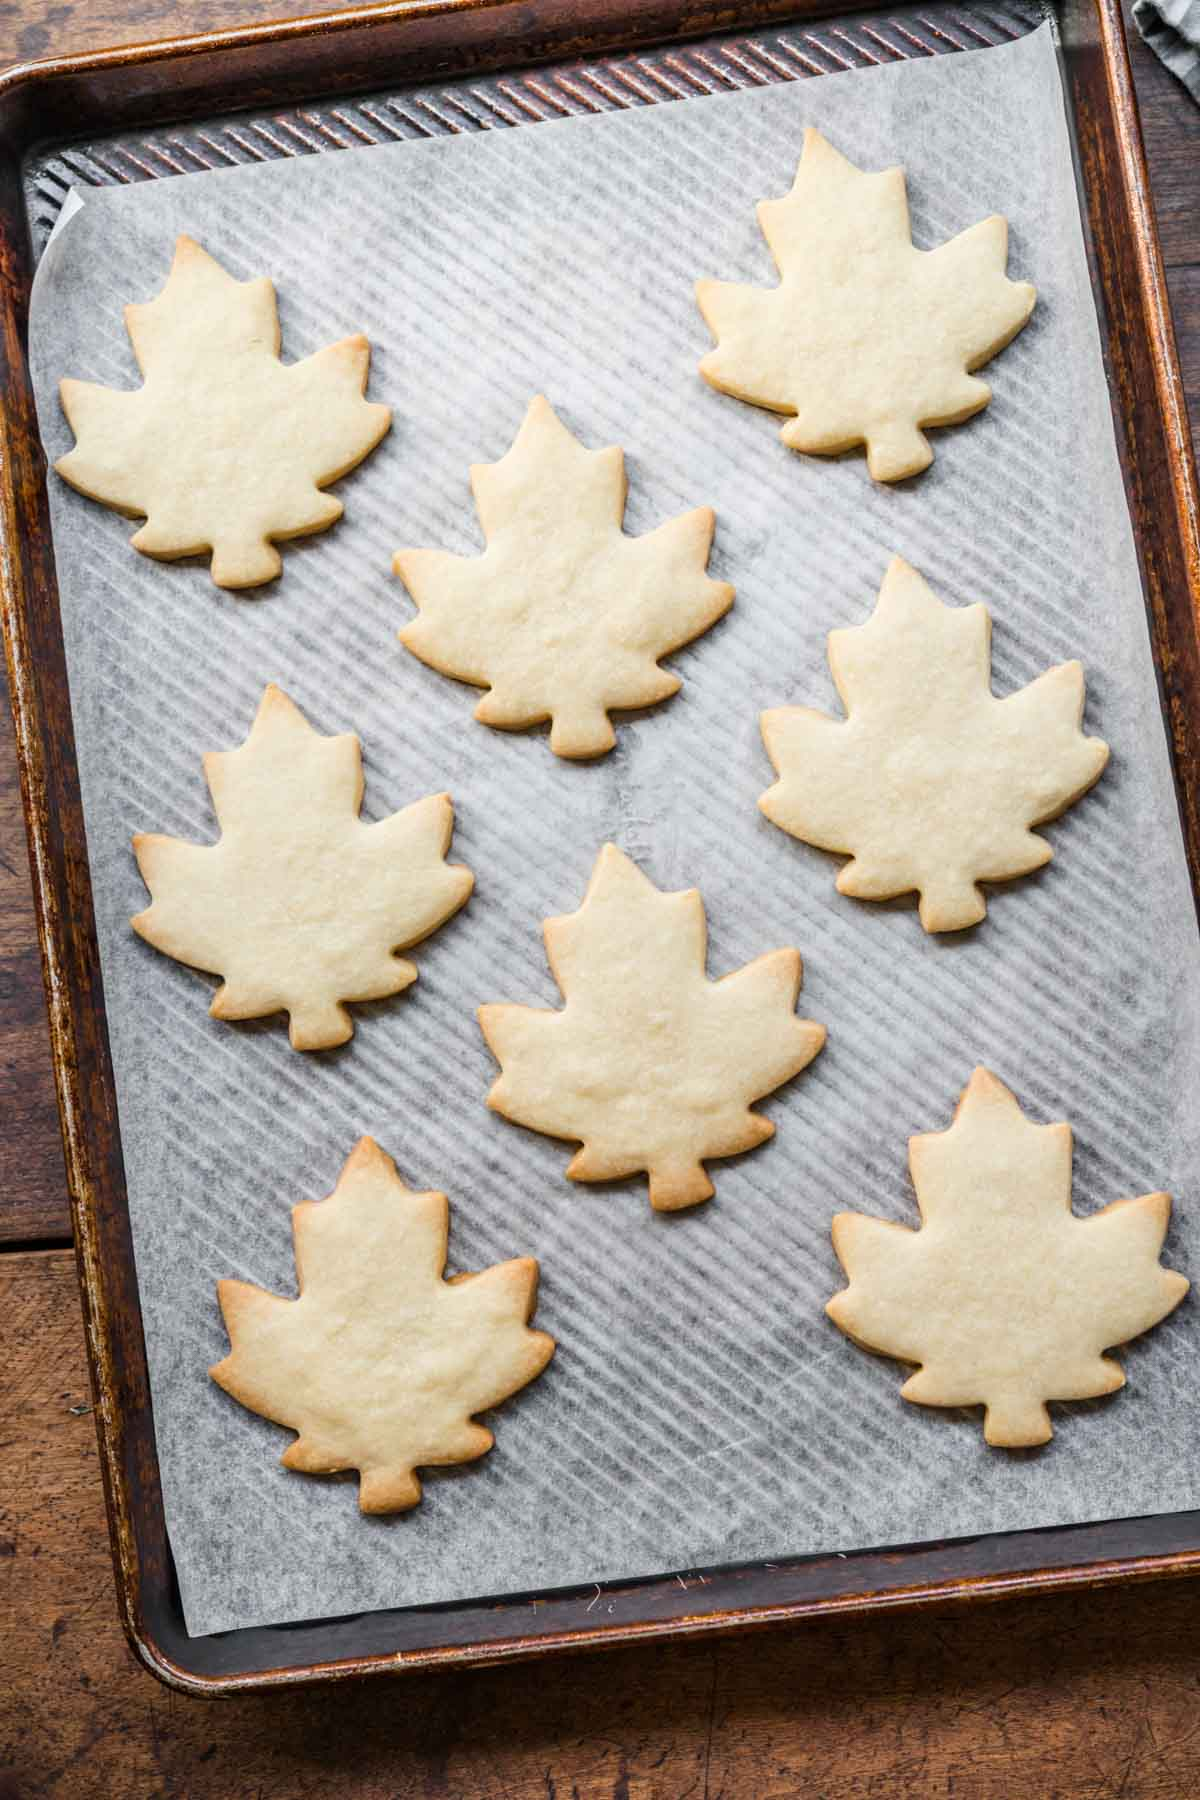 Glazed Maple Shortbread Cookies cut out on baking sheet lined with parchment after baking